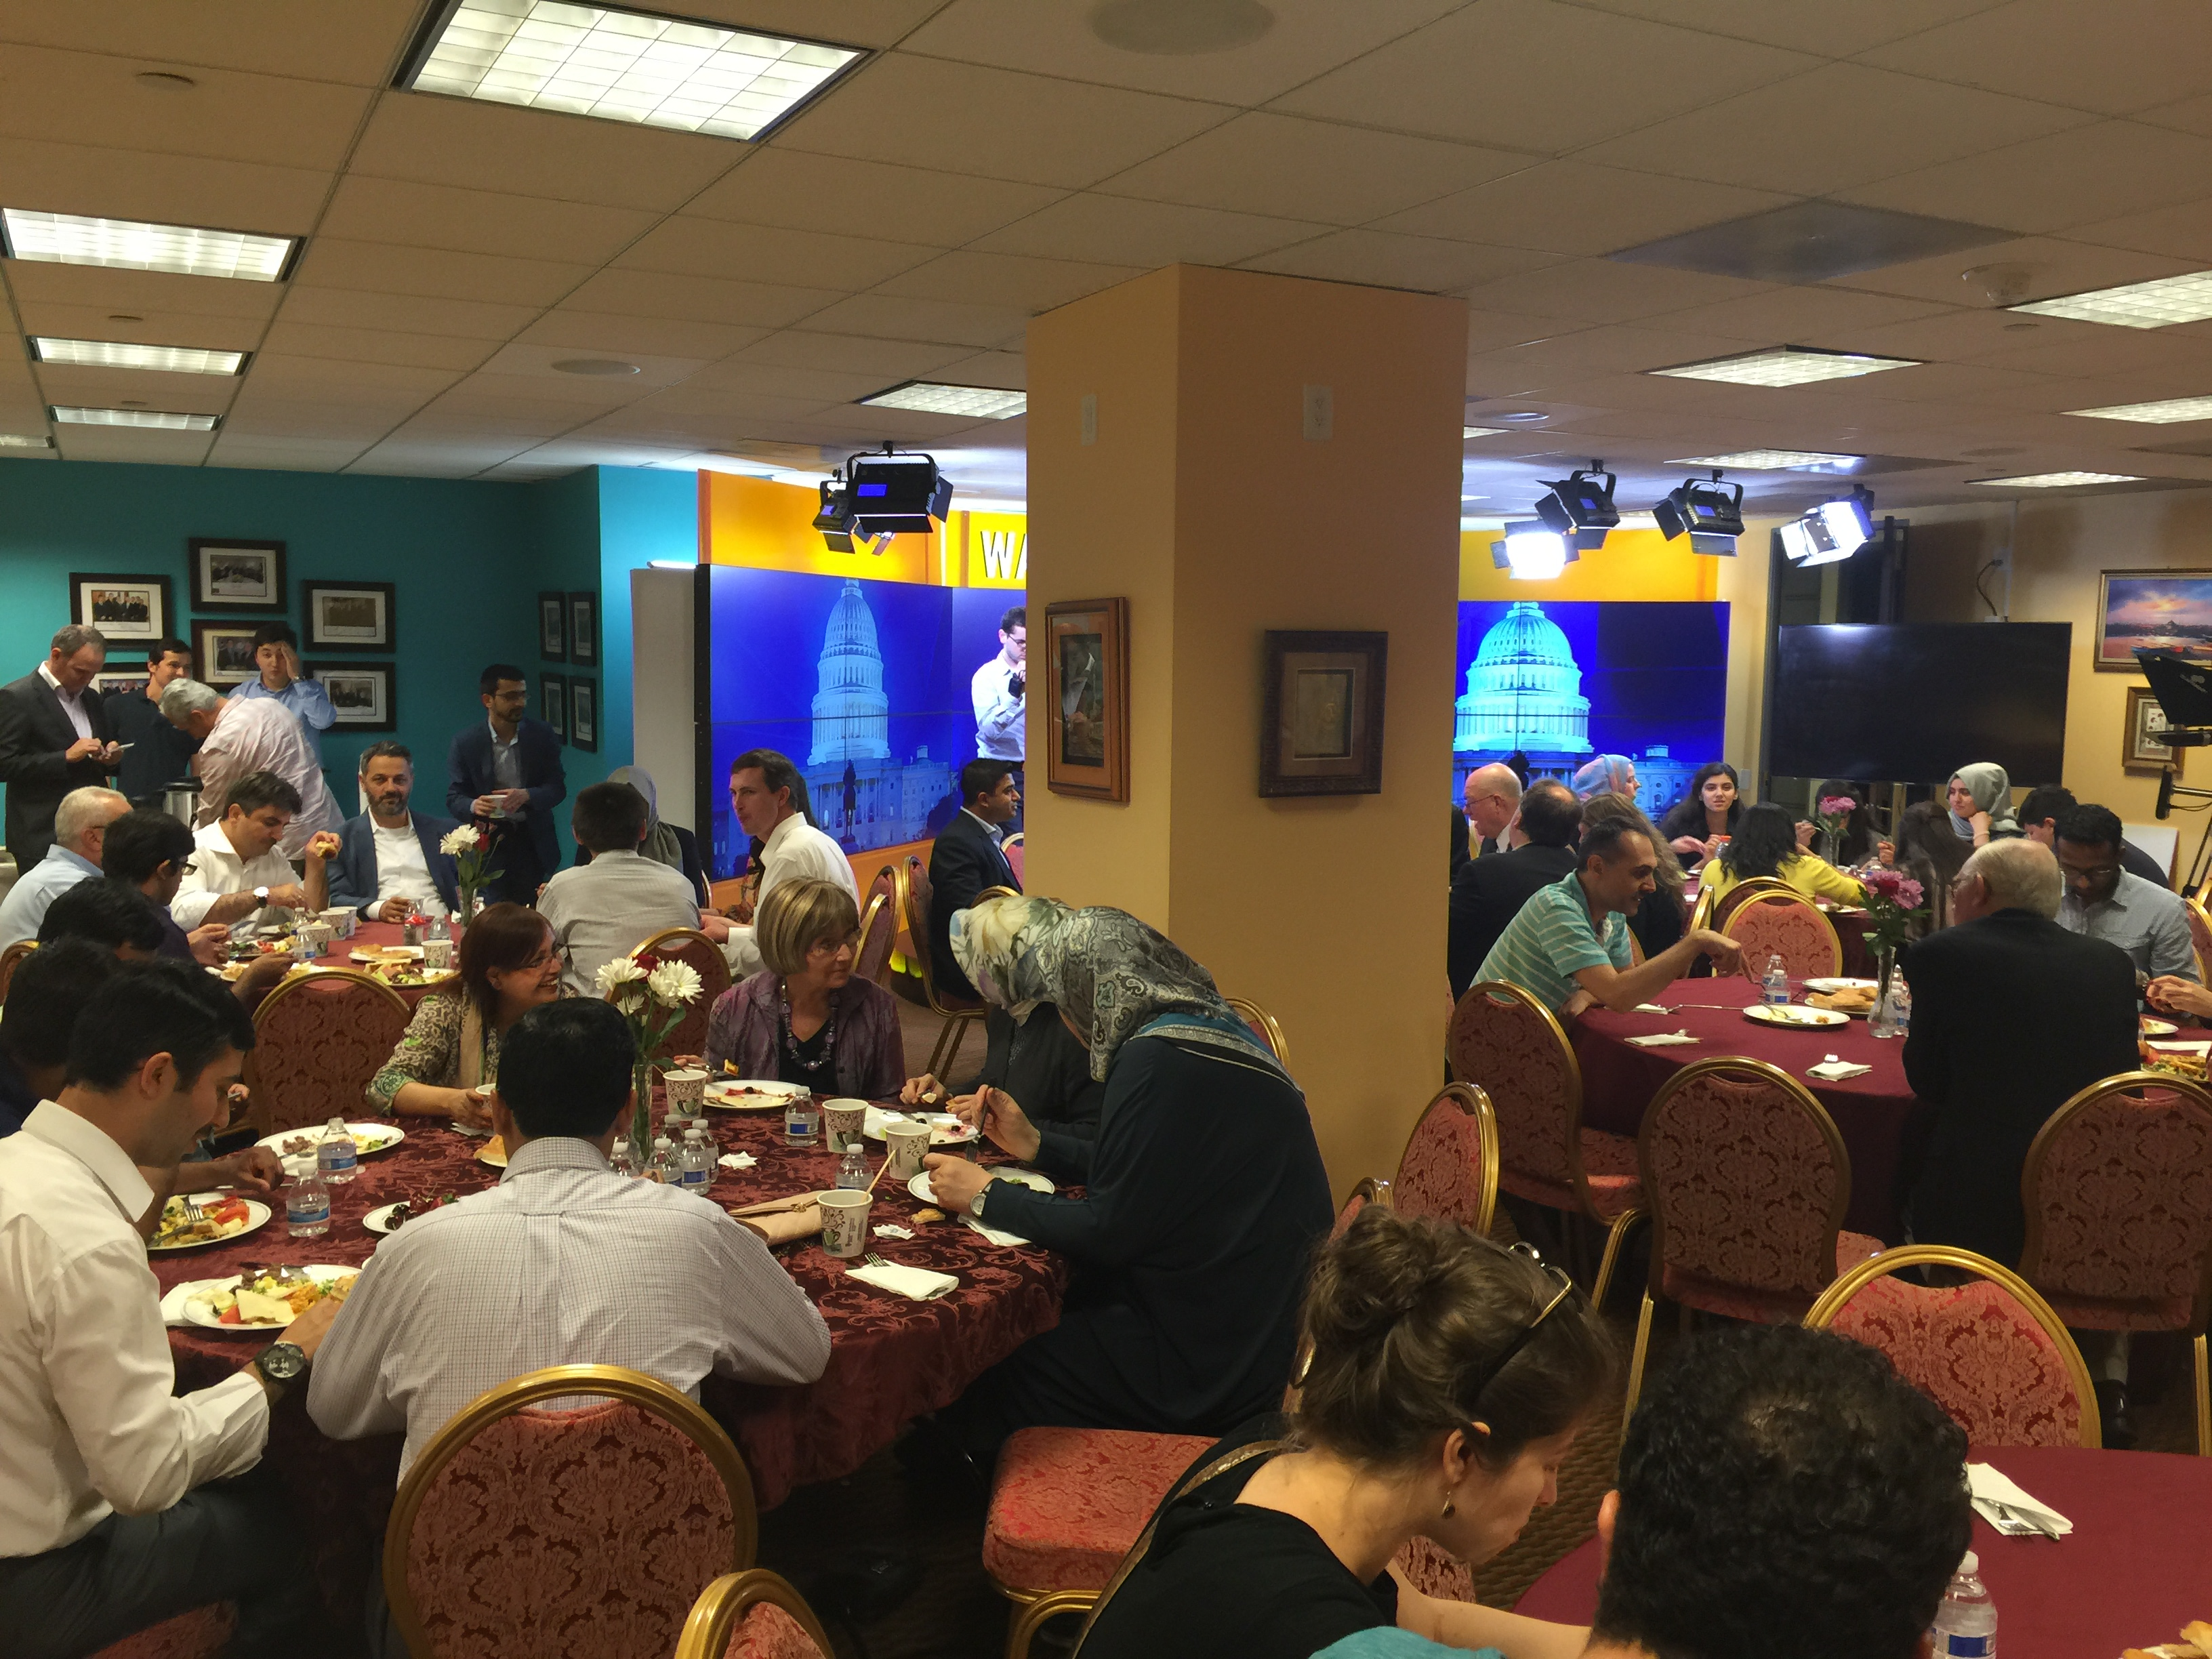 2nd Annual Suhoor full house-#interfaith #ramadan  #dialogue #friendship Thank you DC for a great  night!